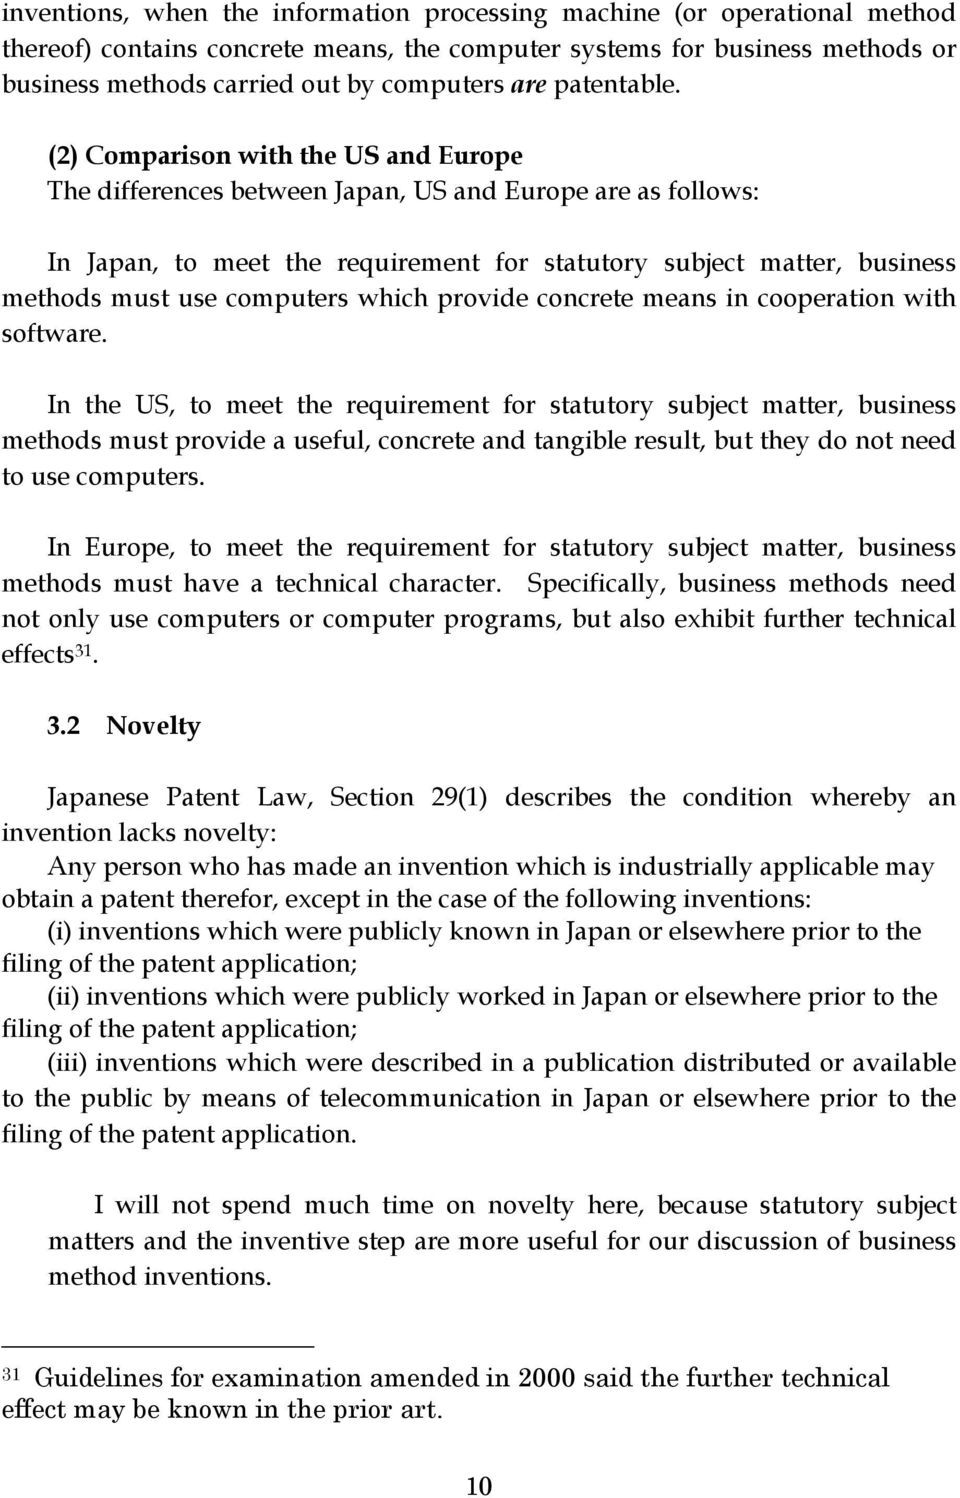 (2) Comparison with the US and Europe The differences between Japan, US and Europe are as follows: In Japan, to meet the requirement for statutory subject matter, business methods must use computers